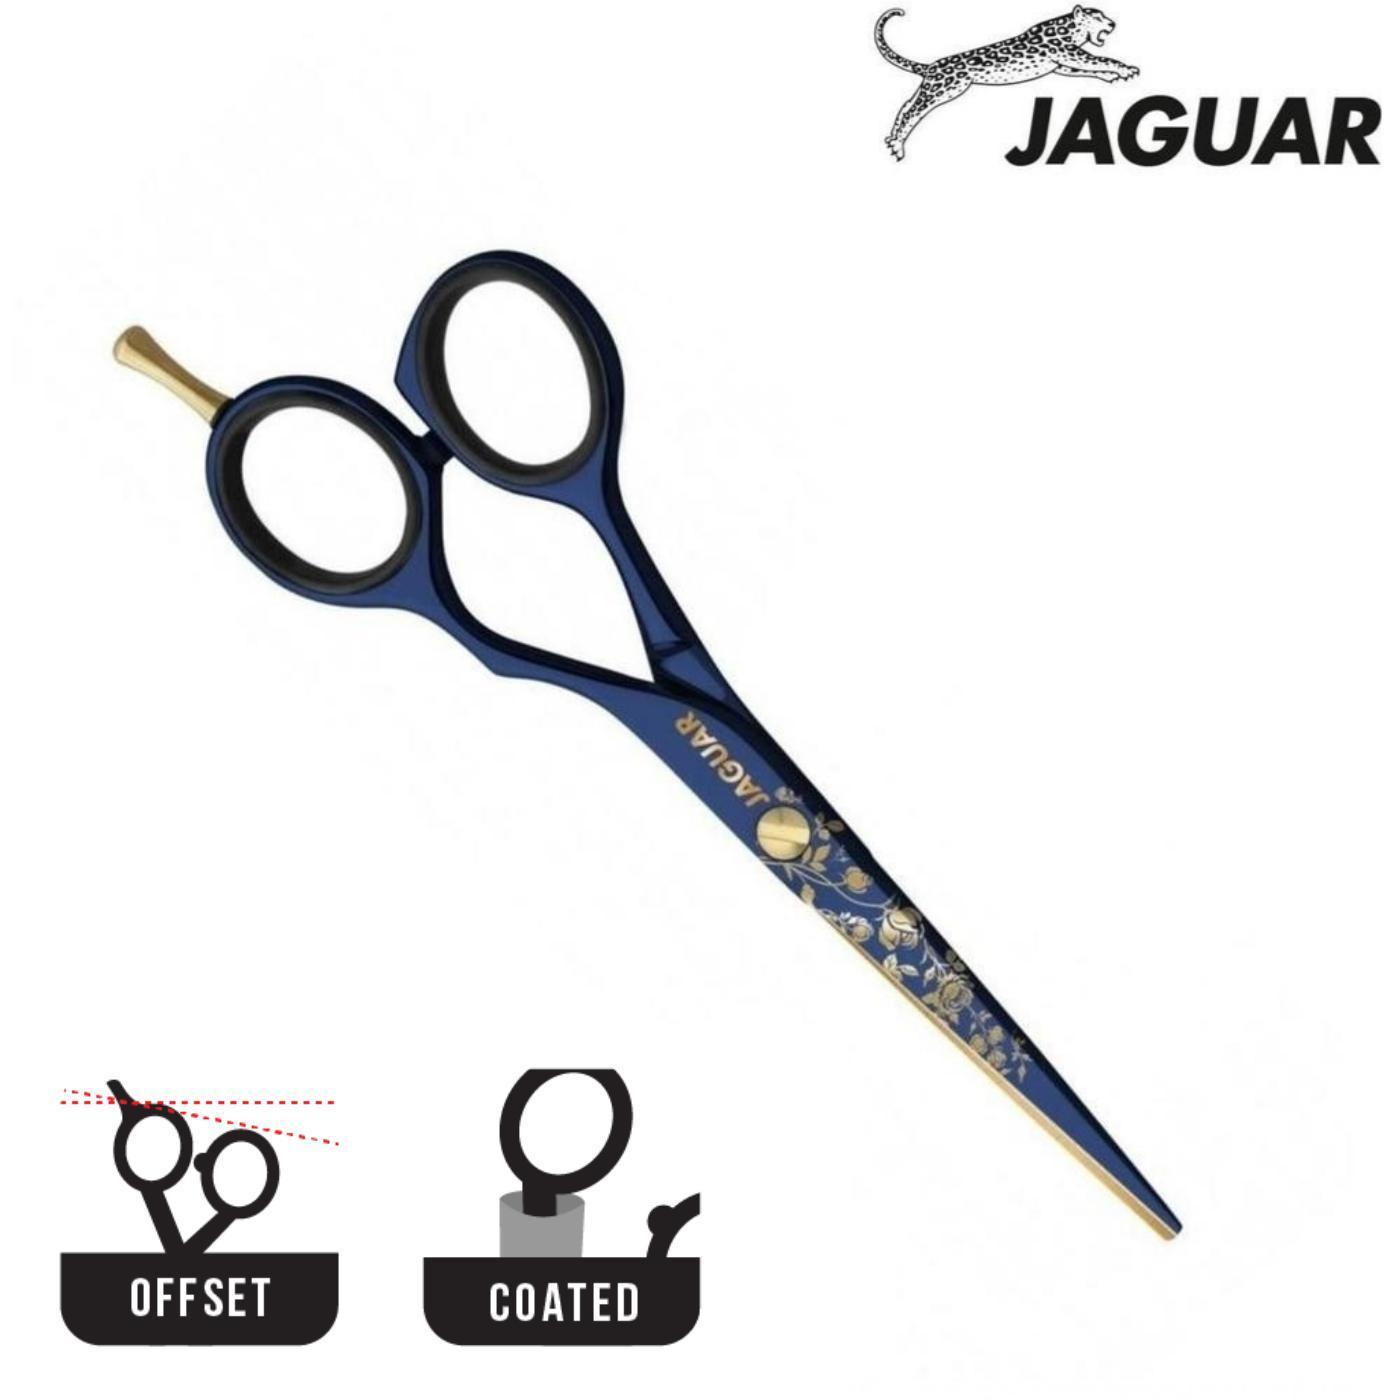 Jaguar Art GOLDEN BLOSSOM Scissors - Japan Scissors